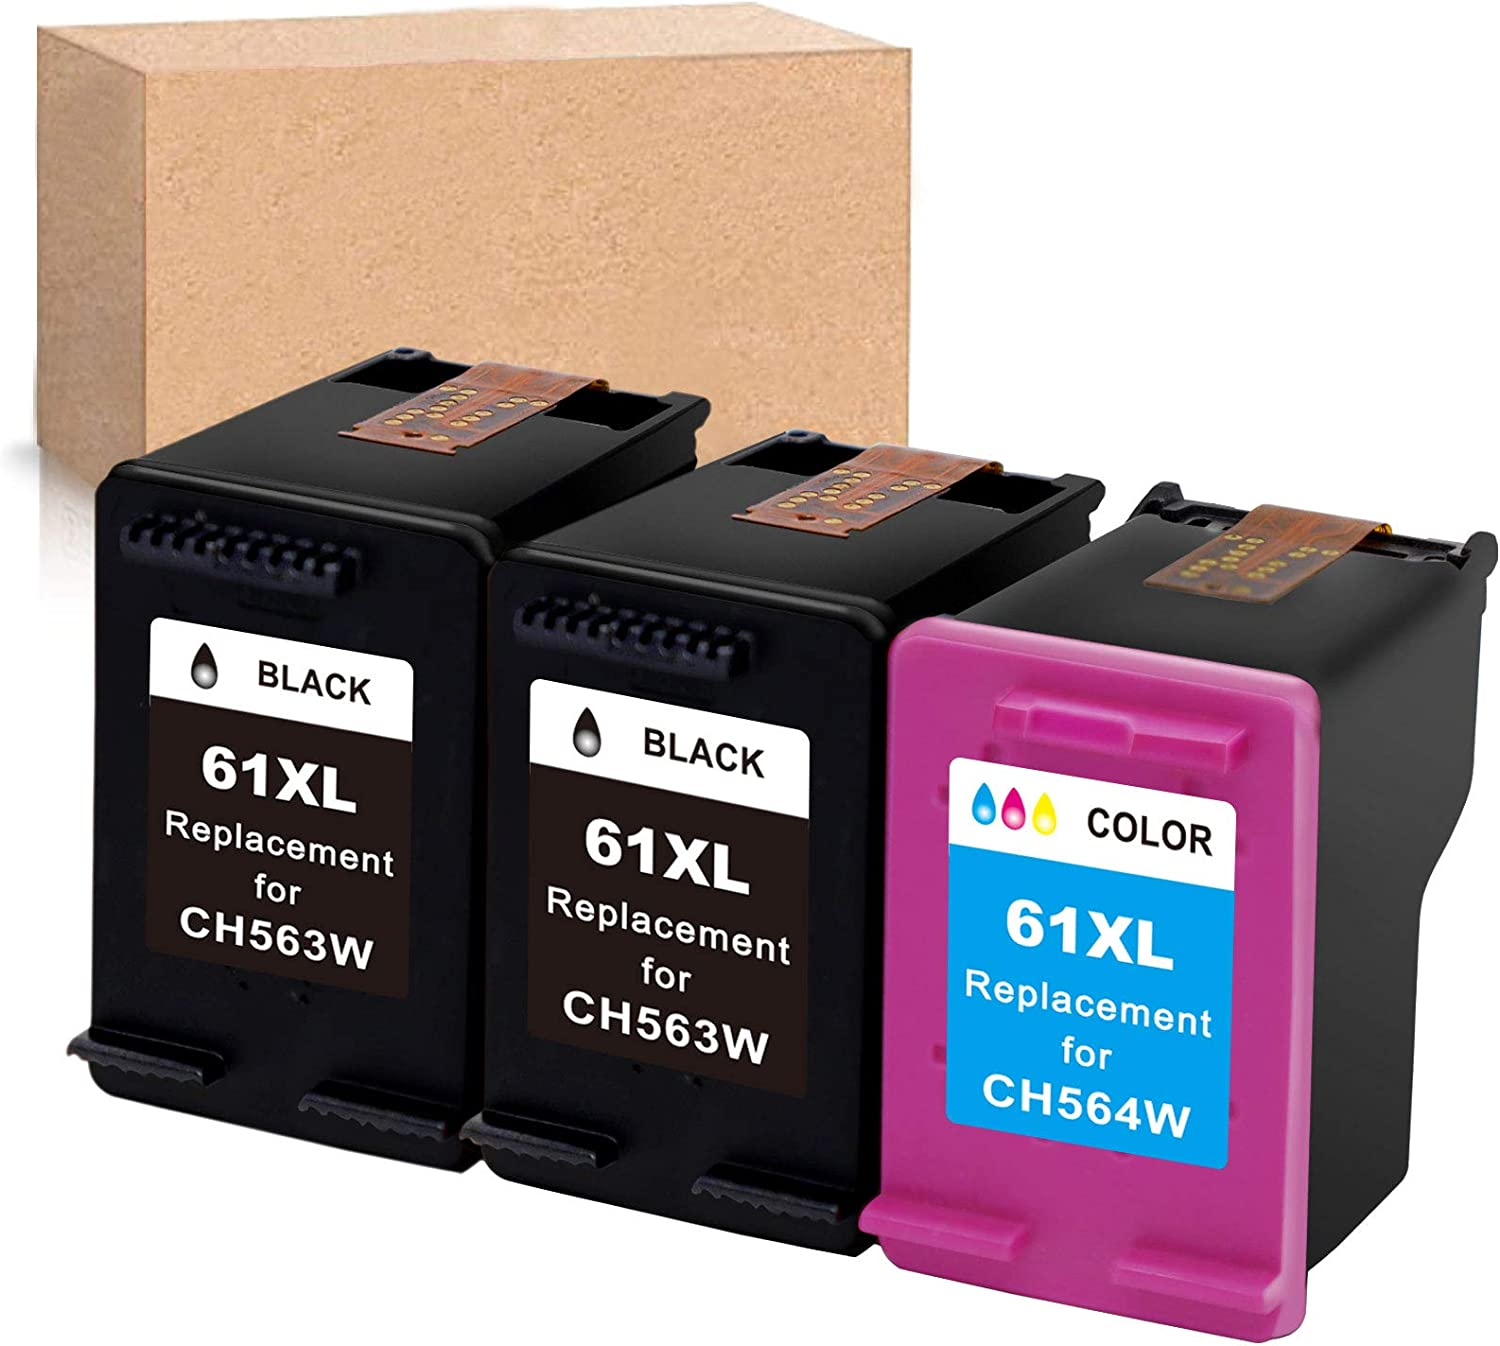 InkSpirit Remanufactured Ink Cartridge 61 Replacement for HP 61XL 61 XL Black Tri-Color Used in Envy 4500 4502 5530 OfficeJet 4630 DeskJet 2512 1512 2542 2540 2544 3000 3052a 1055 3051a 2548 (3-Pack)